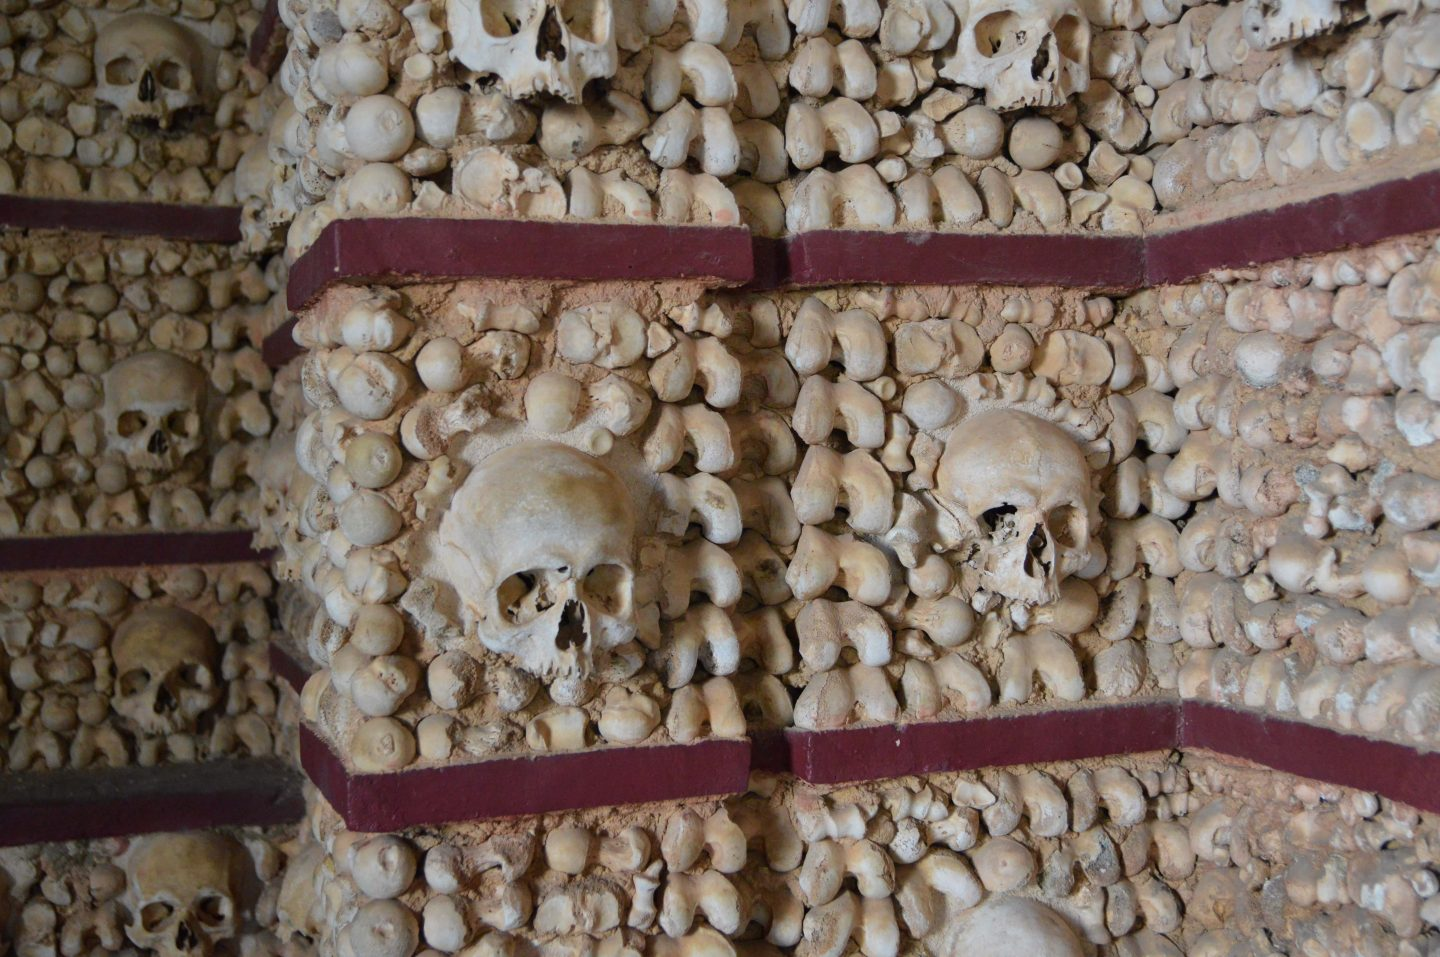 Capela de Ossos (The Bone Chapel), Faro, Portugal ranks as one of the spookiest places in Europe